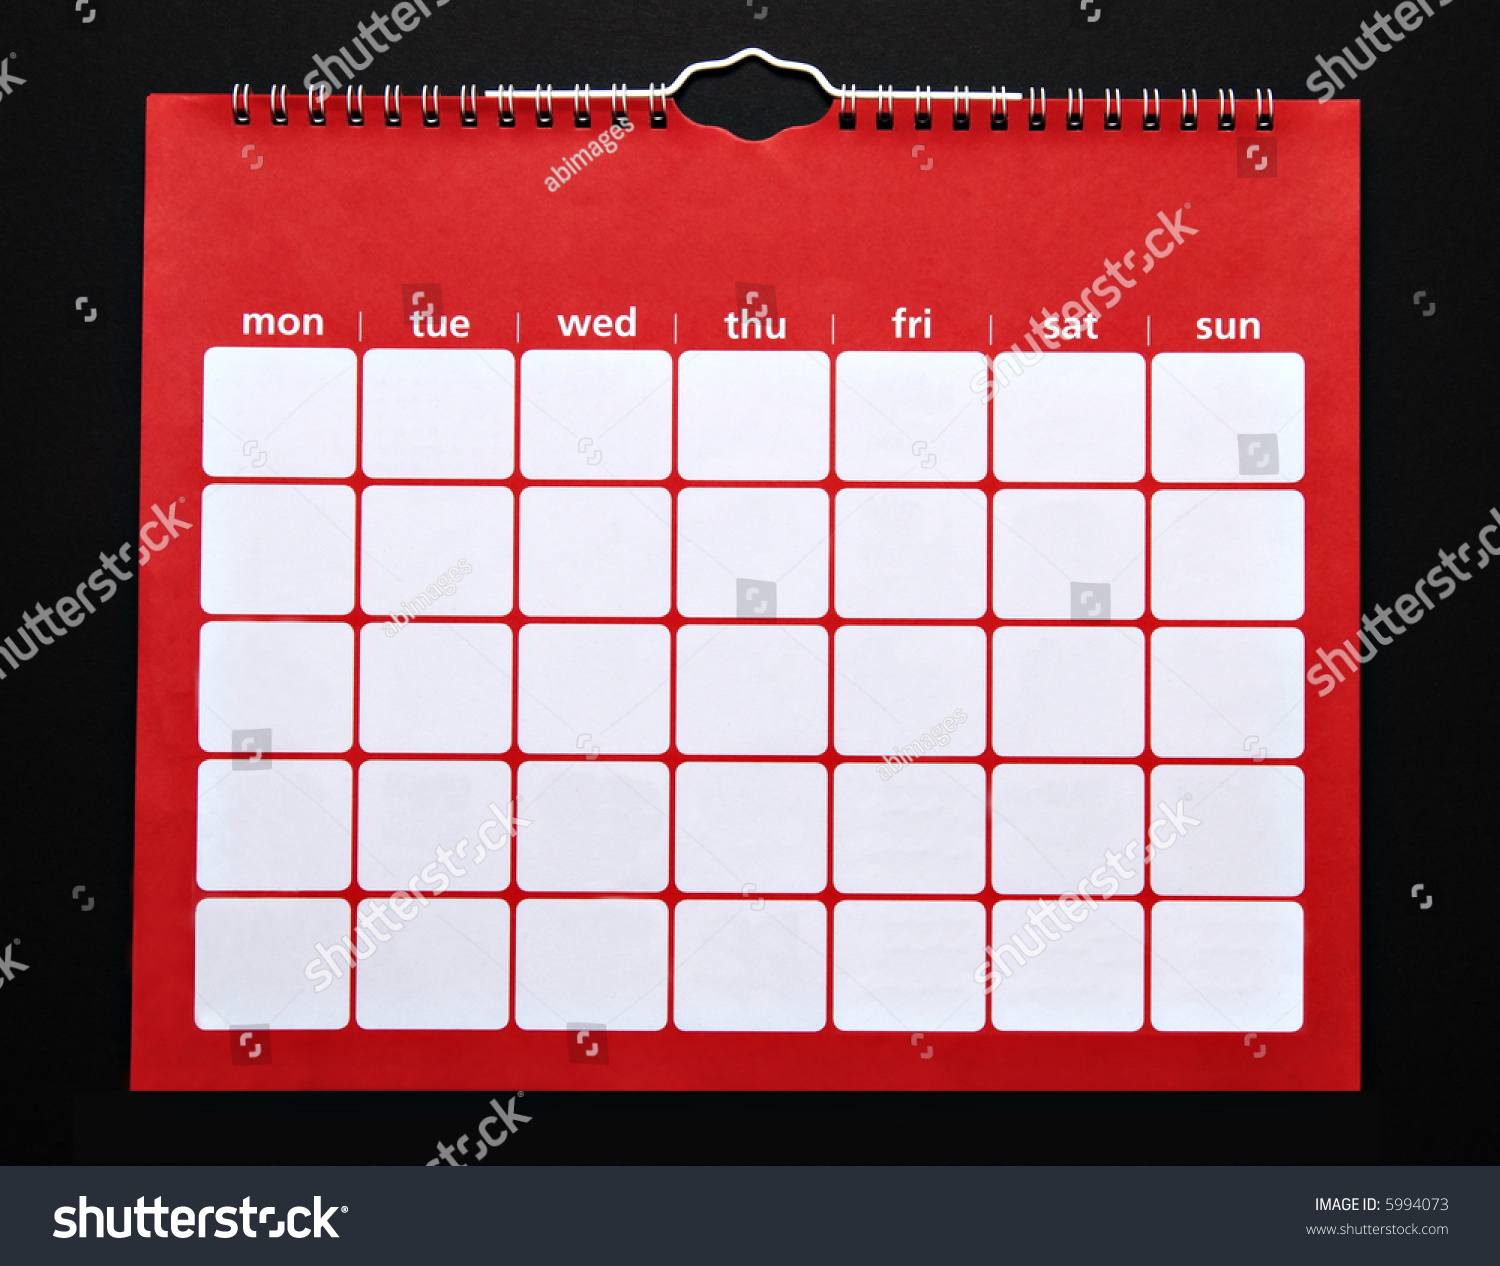 Calendar Red : Plain red monthly calendar add your own numbers stock